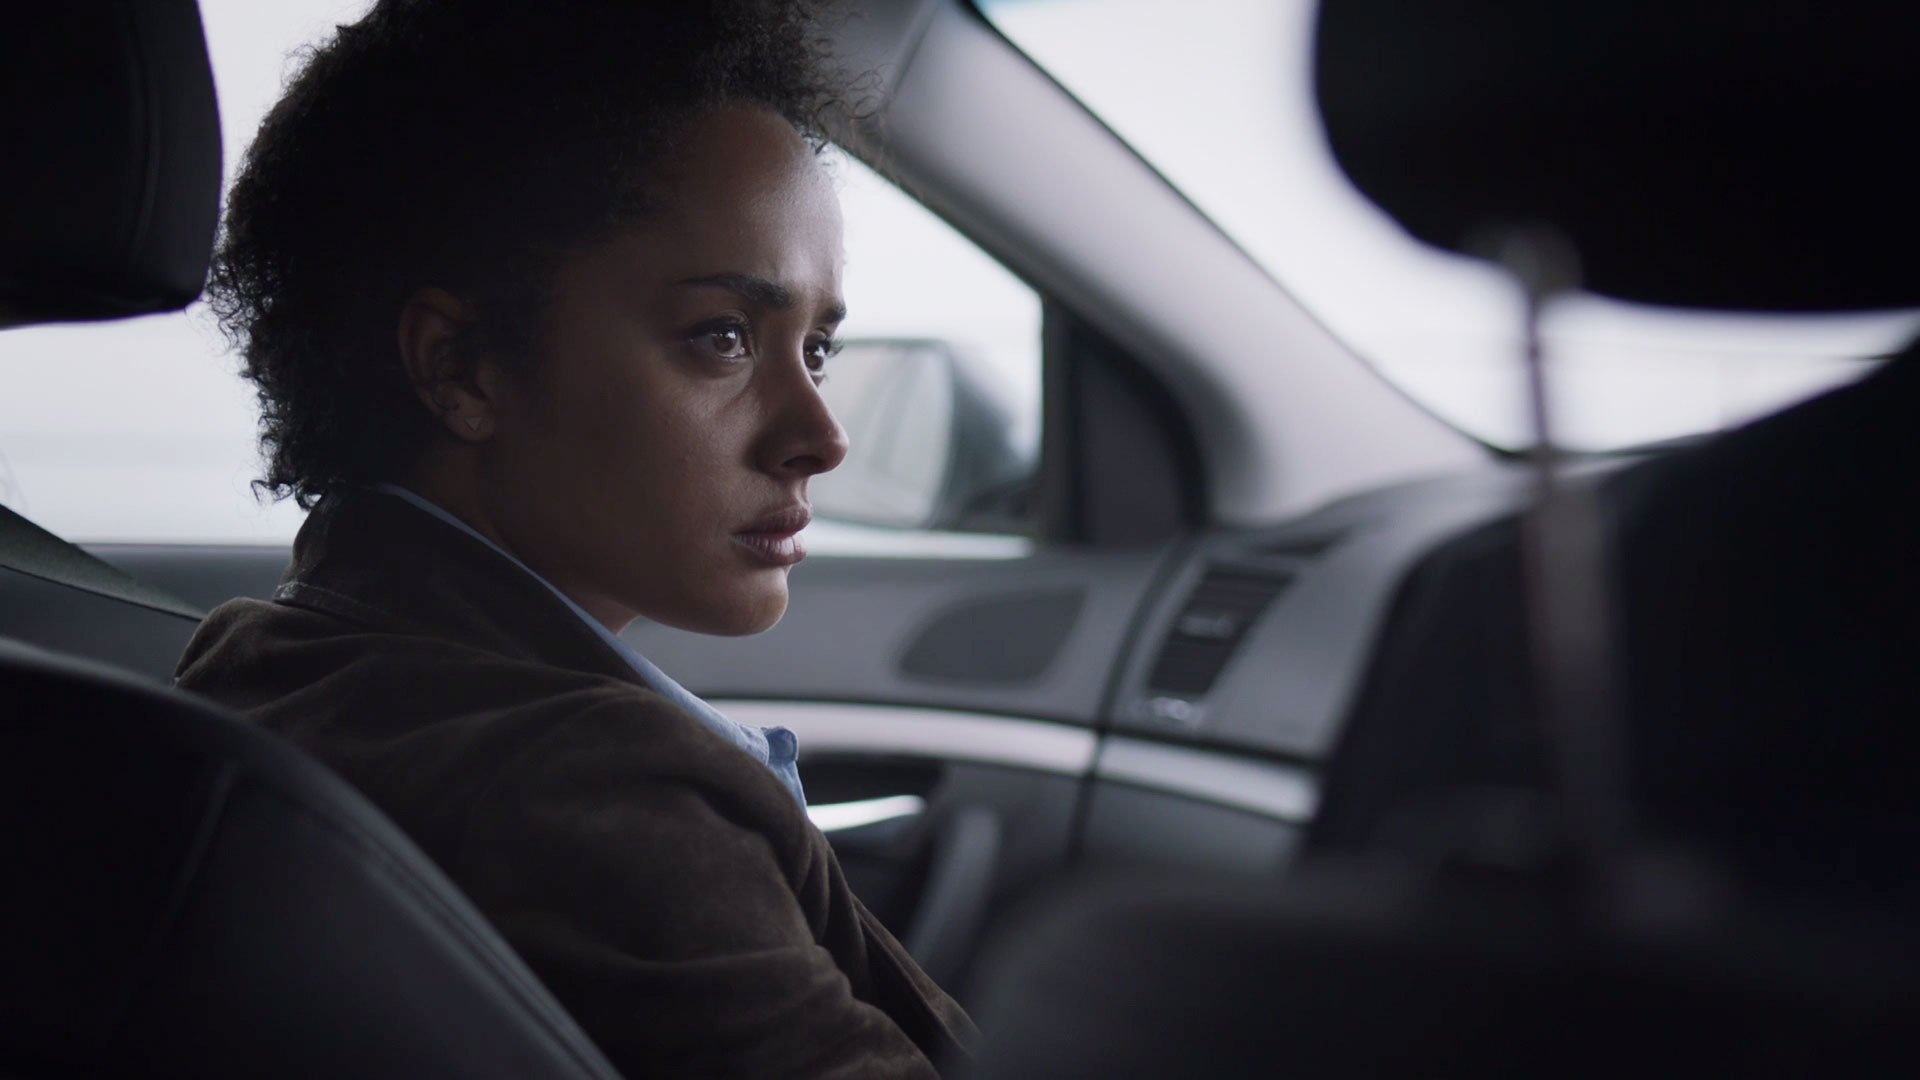 ITV's dark drama The Level is about to get darker as Devlin goes undercover